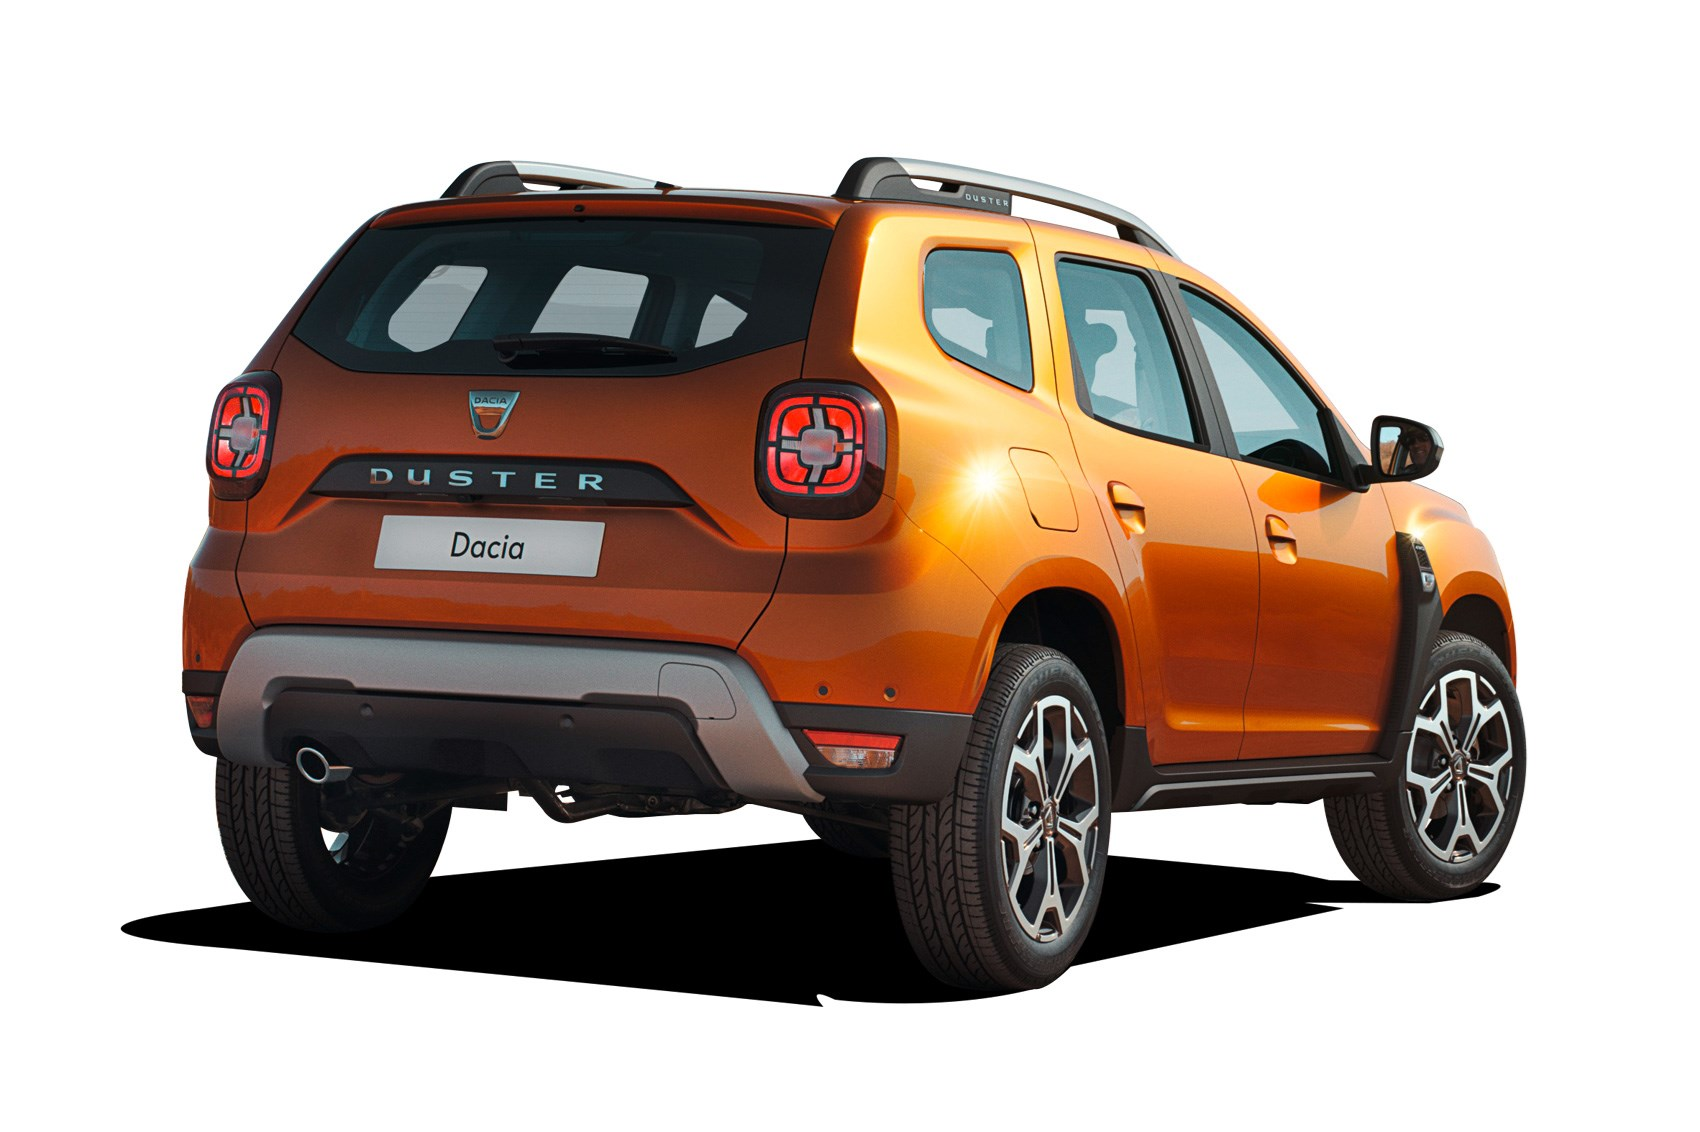 New 2018 Dacia Duster Revealed Pictures Specs Details By Car Magazine